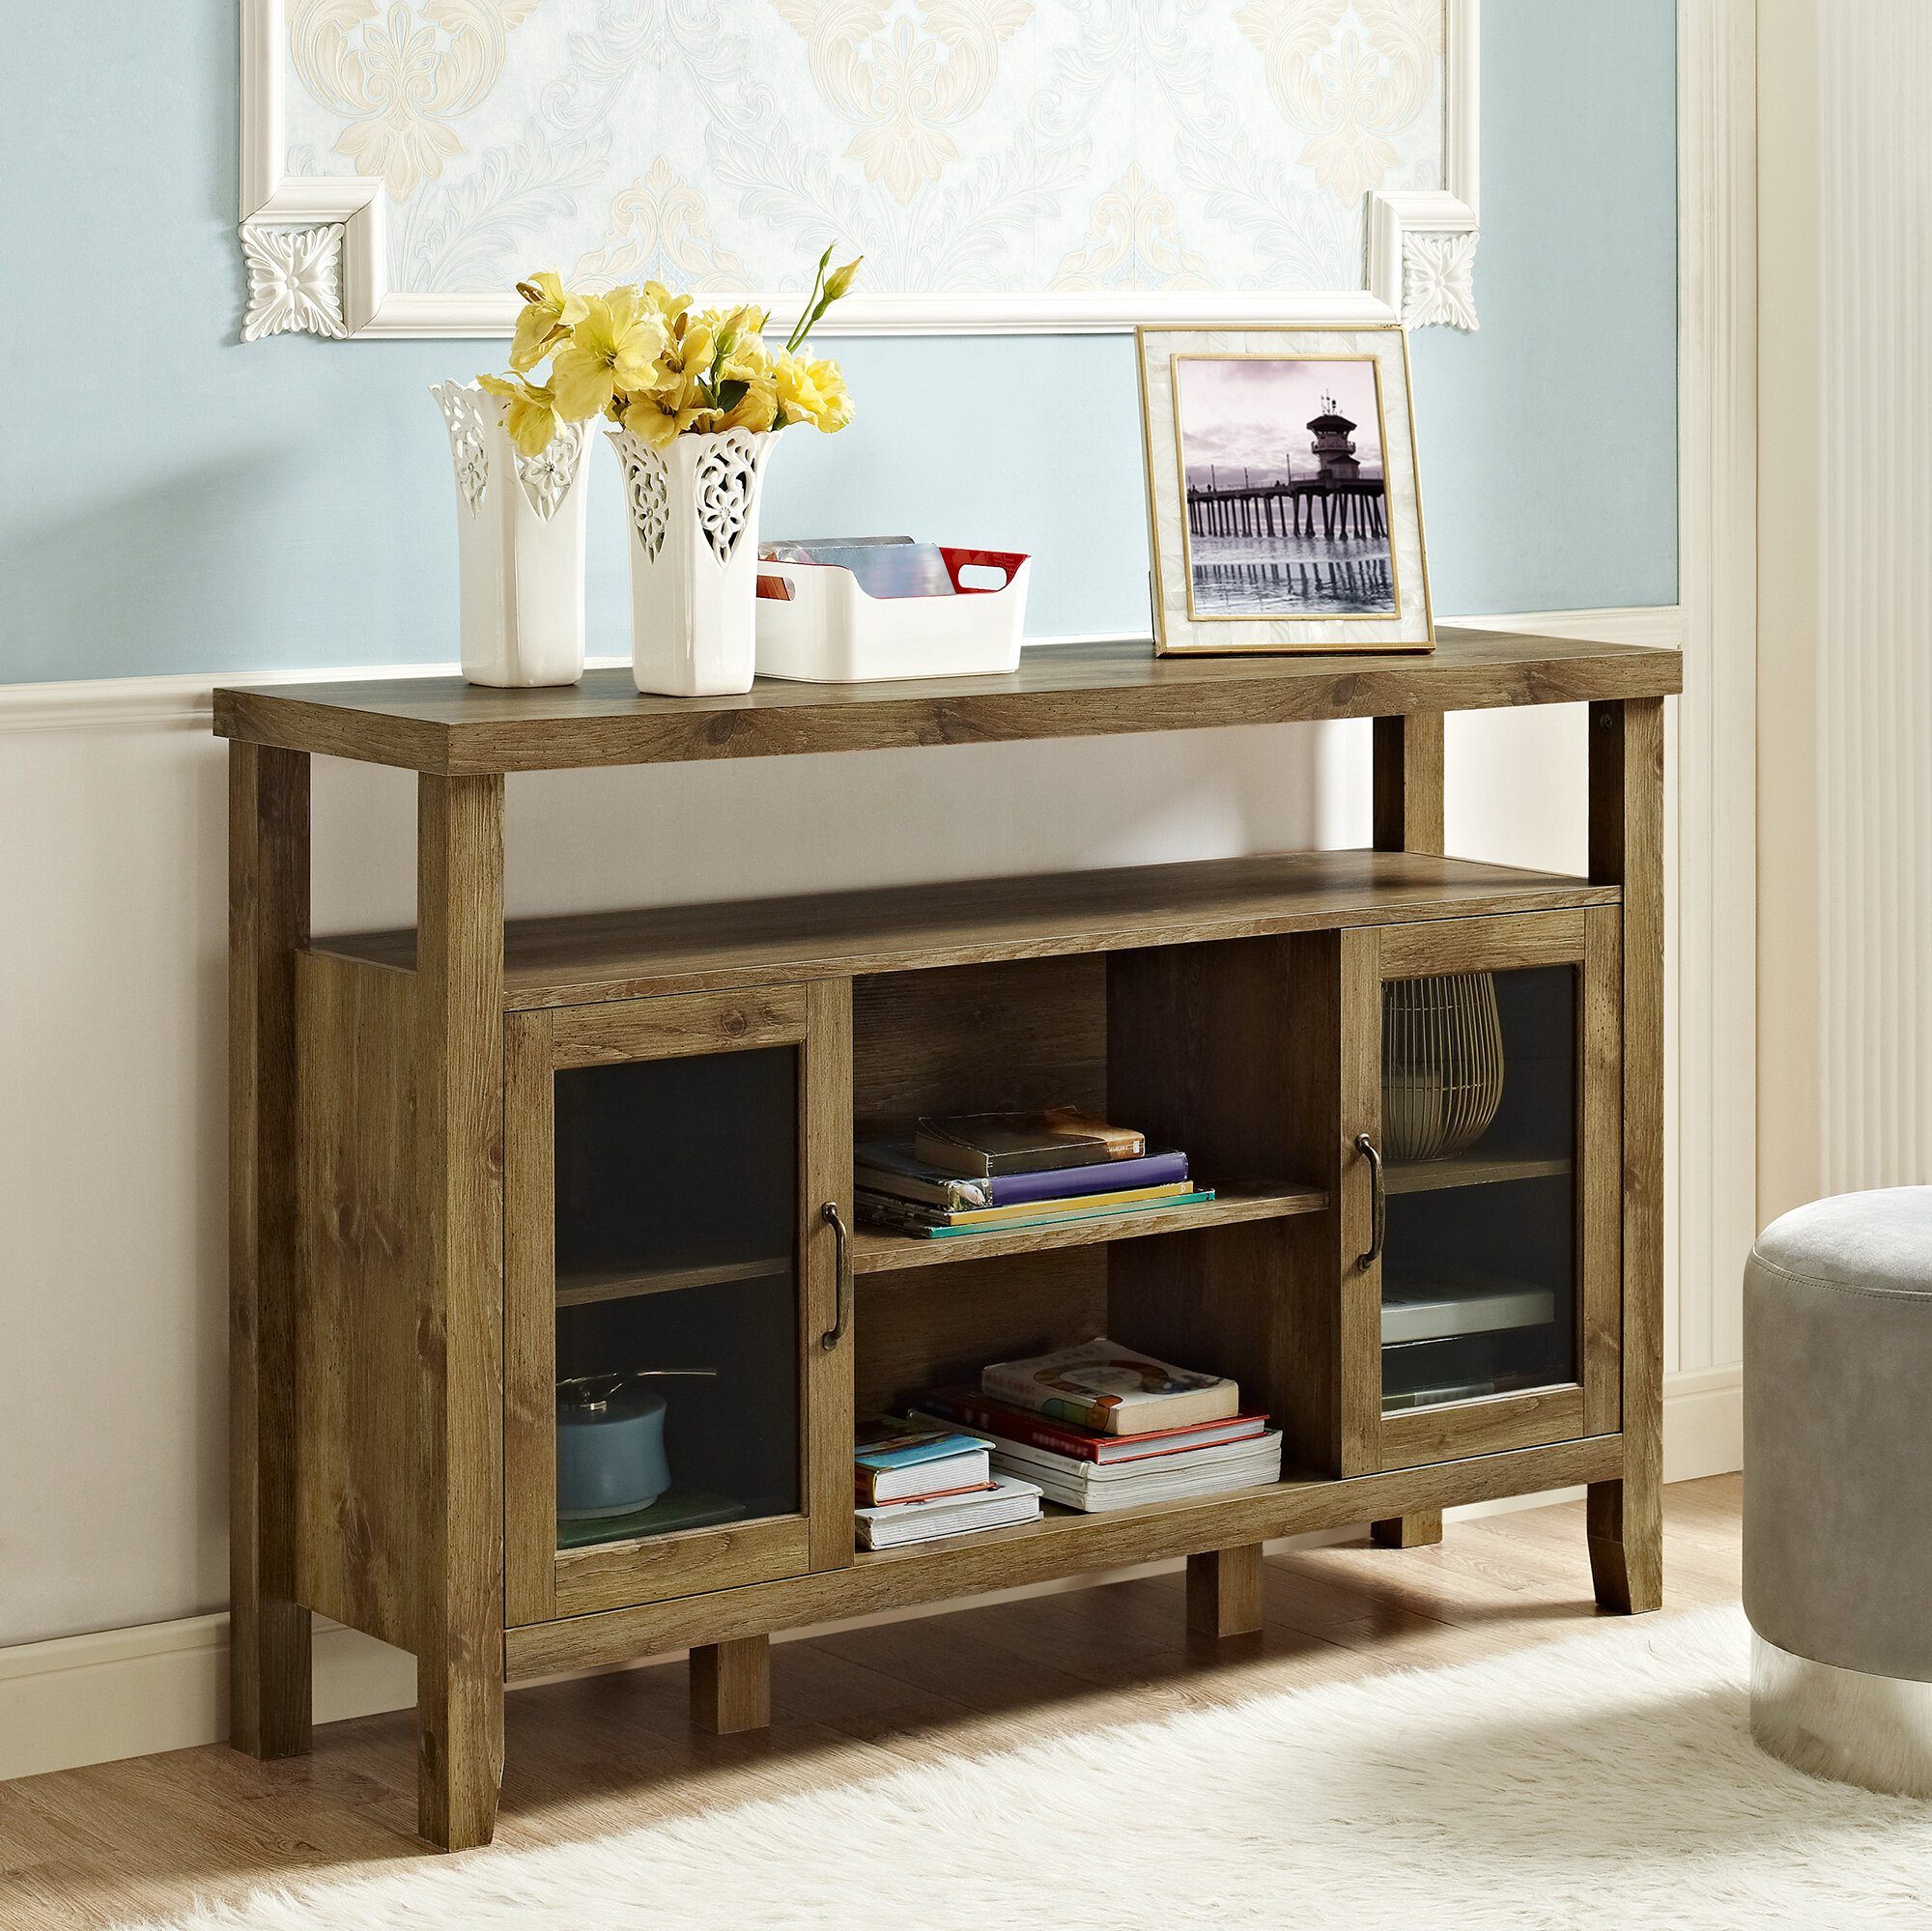 donnieann aeda sofa hollydale mission home today garden style chestnut sideboard product overstock shipping free table